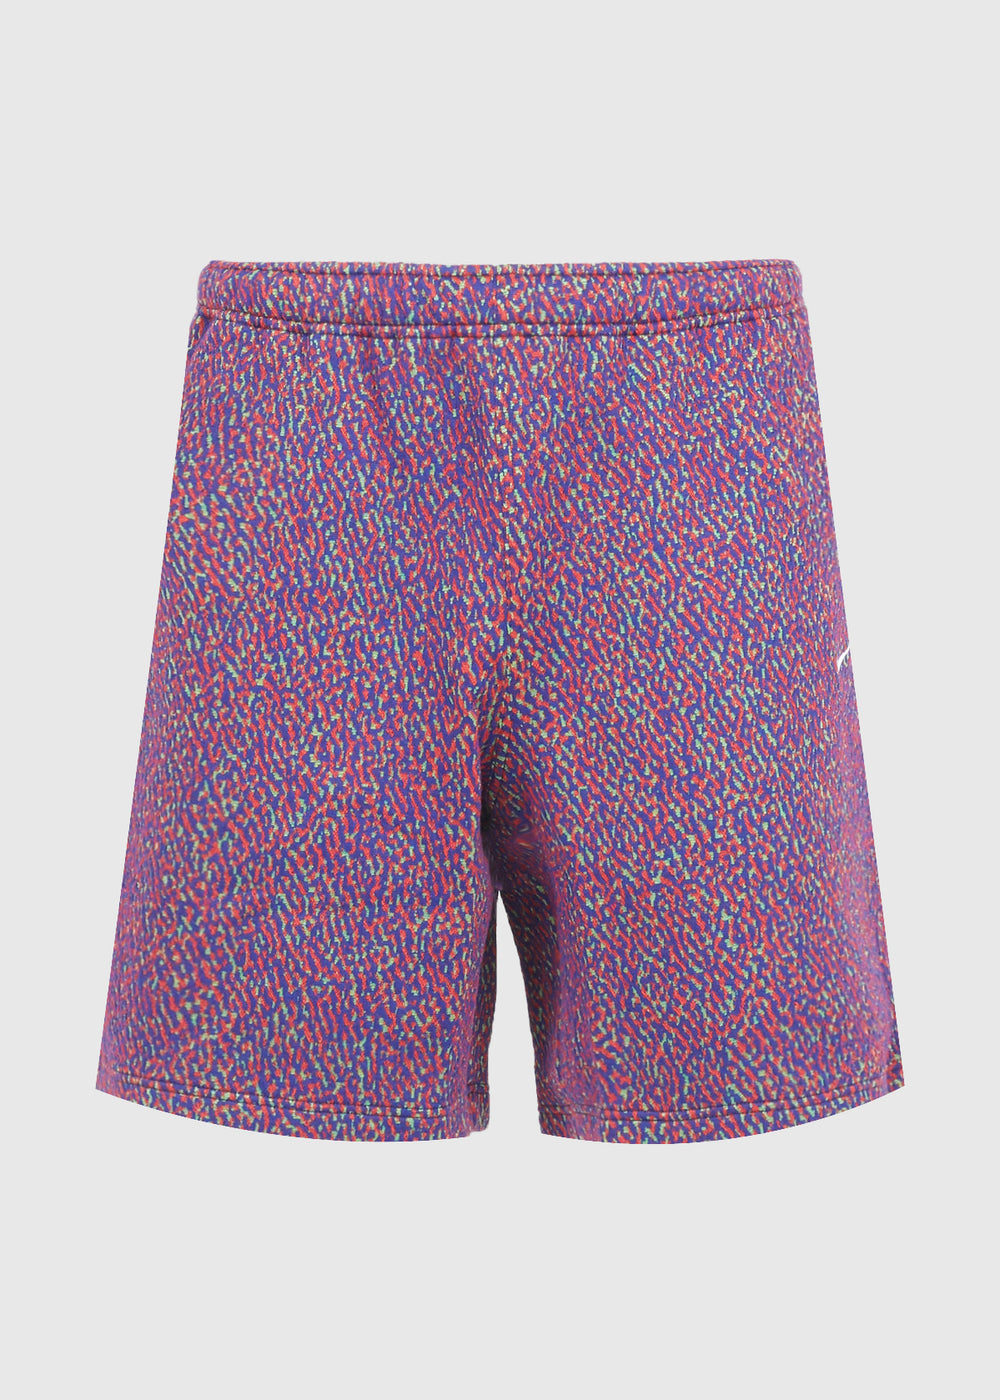 nrg-mii-shorts-ct4588-529-prp-1